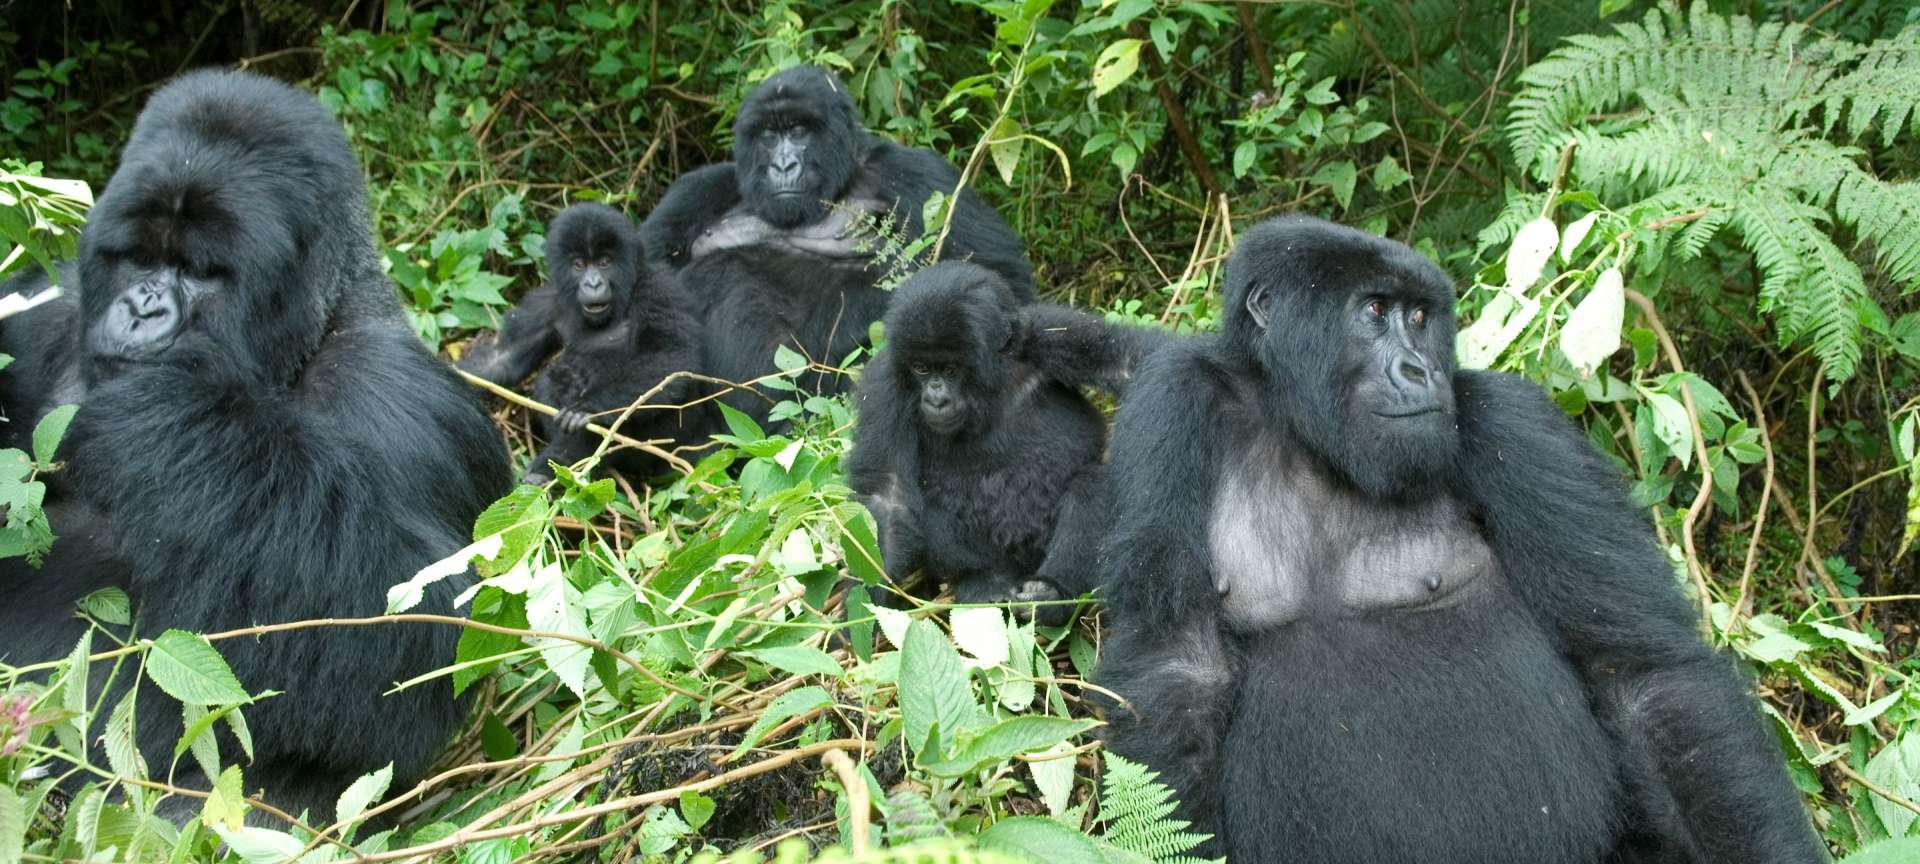 volcanoes national park Rwanda, Parc Nationals Des Volcans, PNV, Gorilla Tracking Safari, Gorilla Trekking,